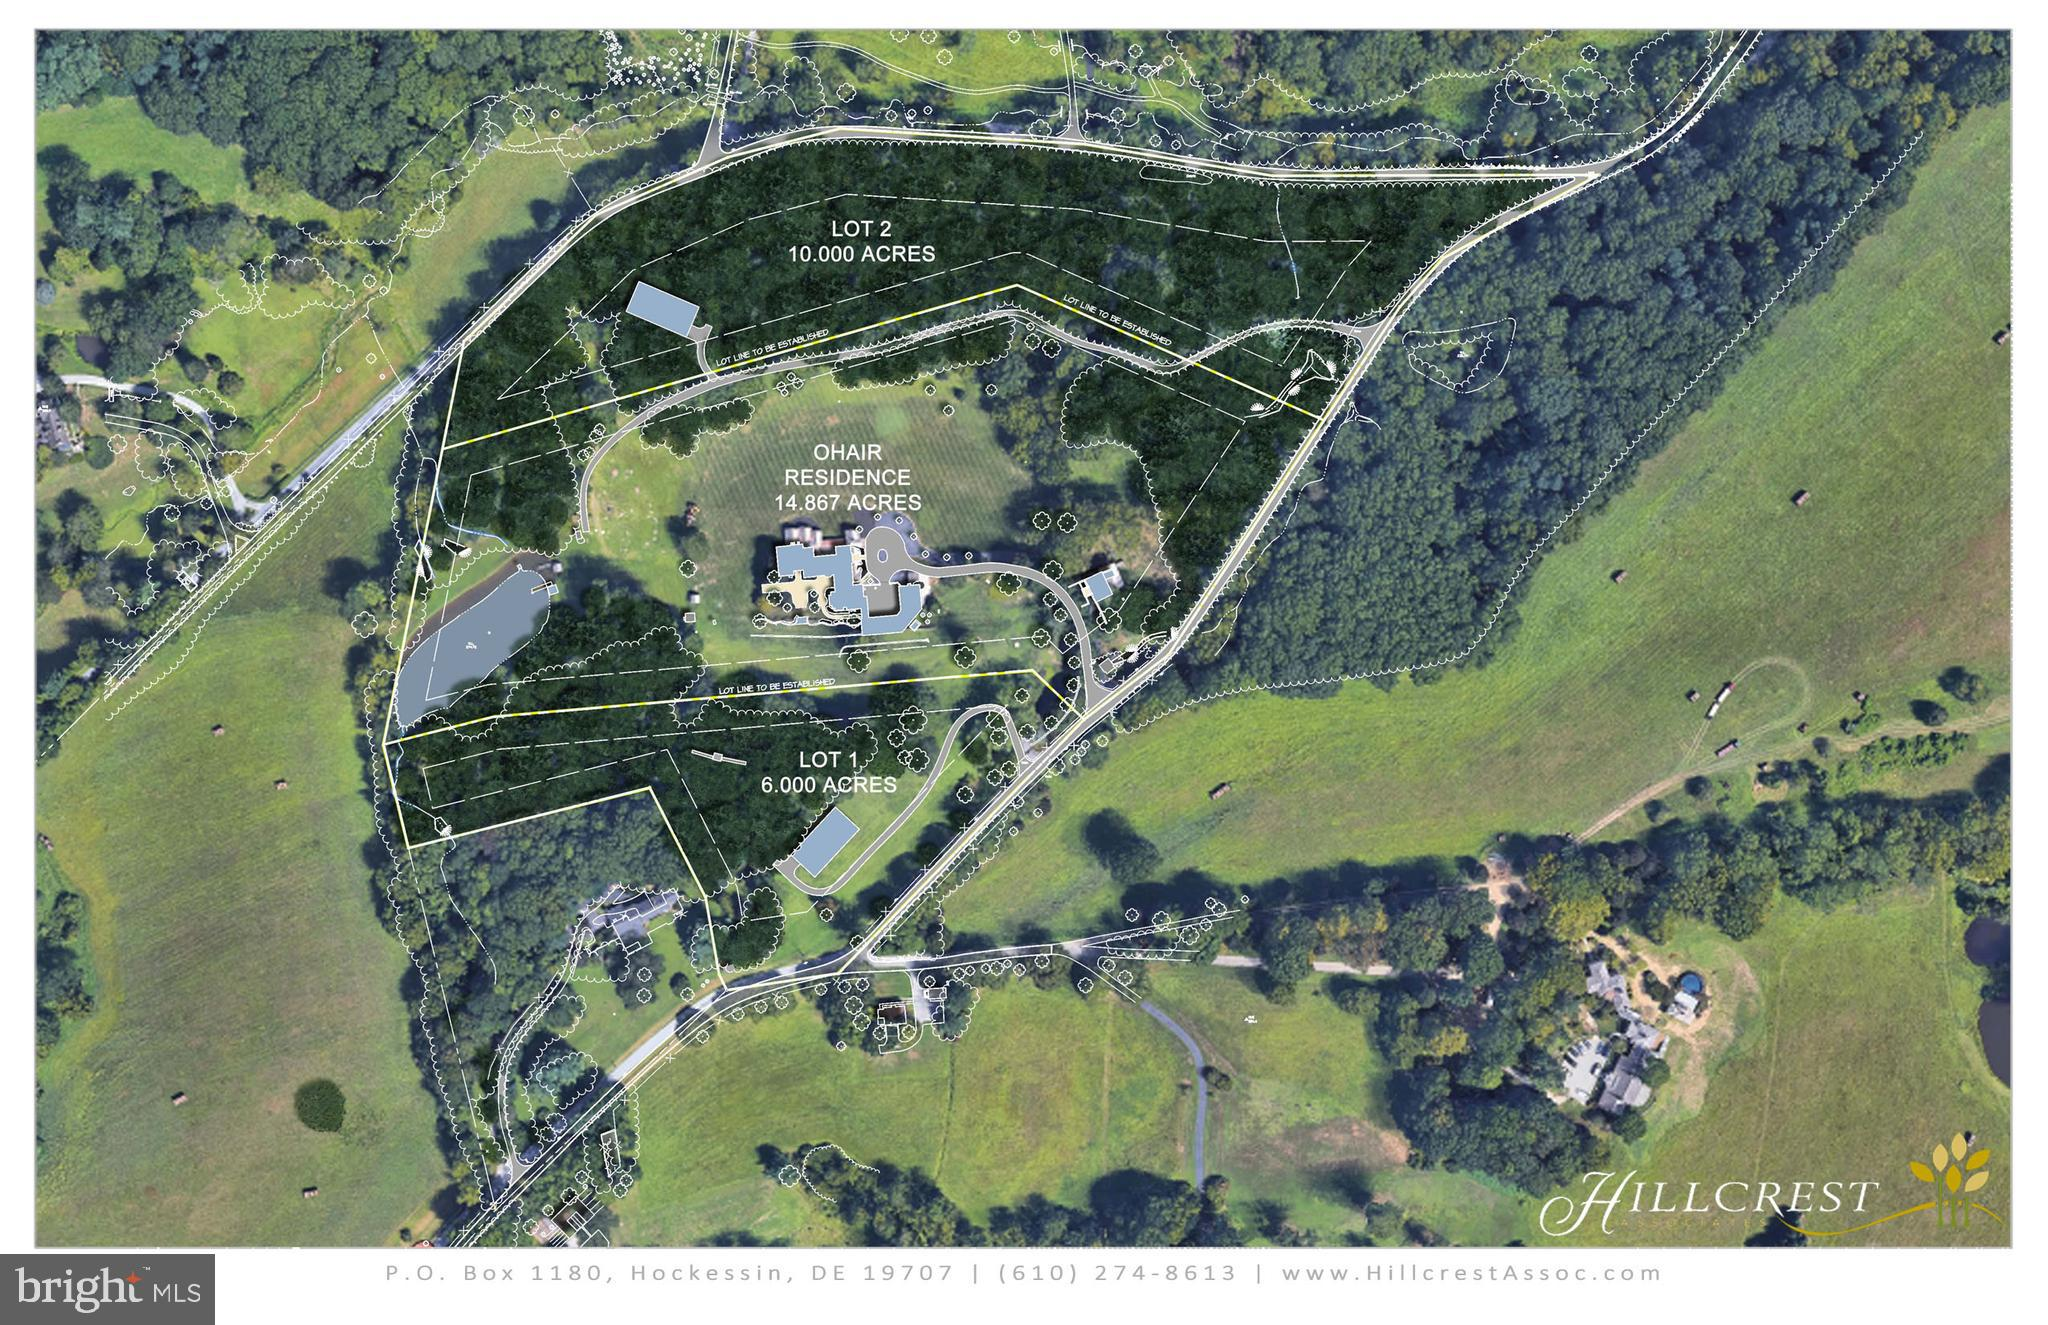 1151 STOCKFORD RD. - LOT A, CHADDS FORD, PA 19317